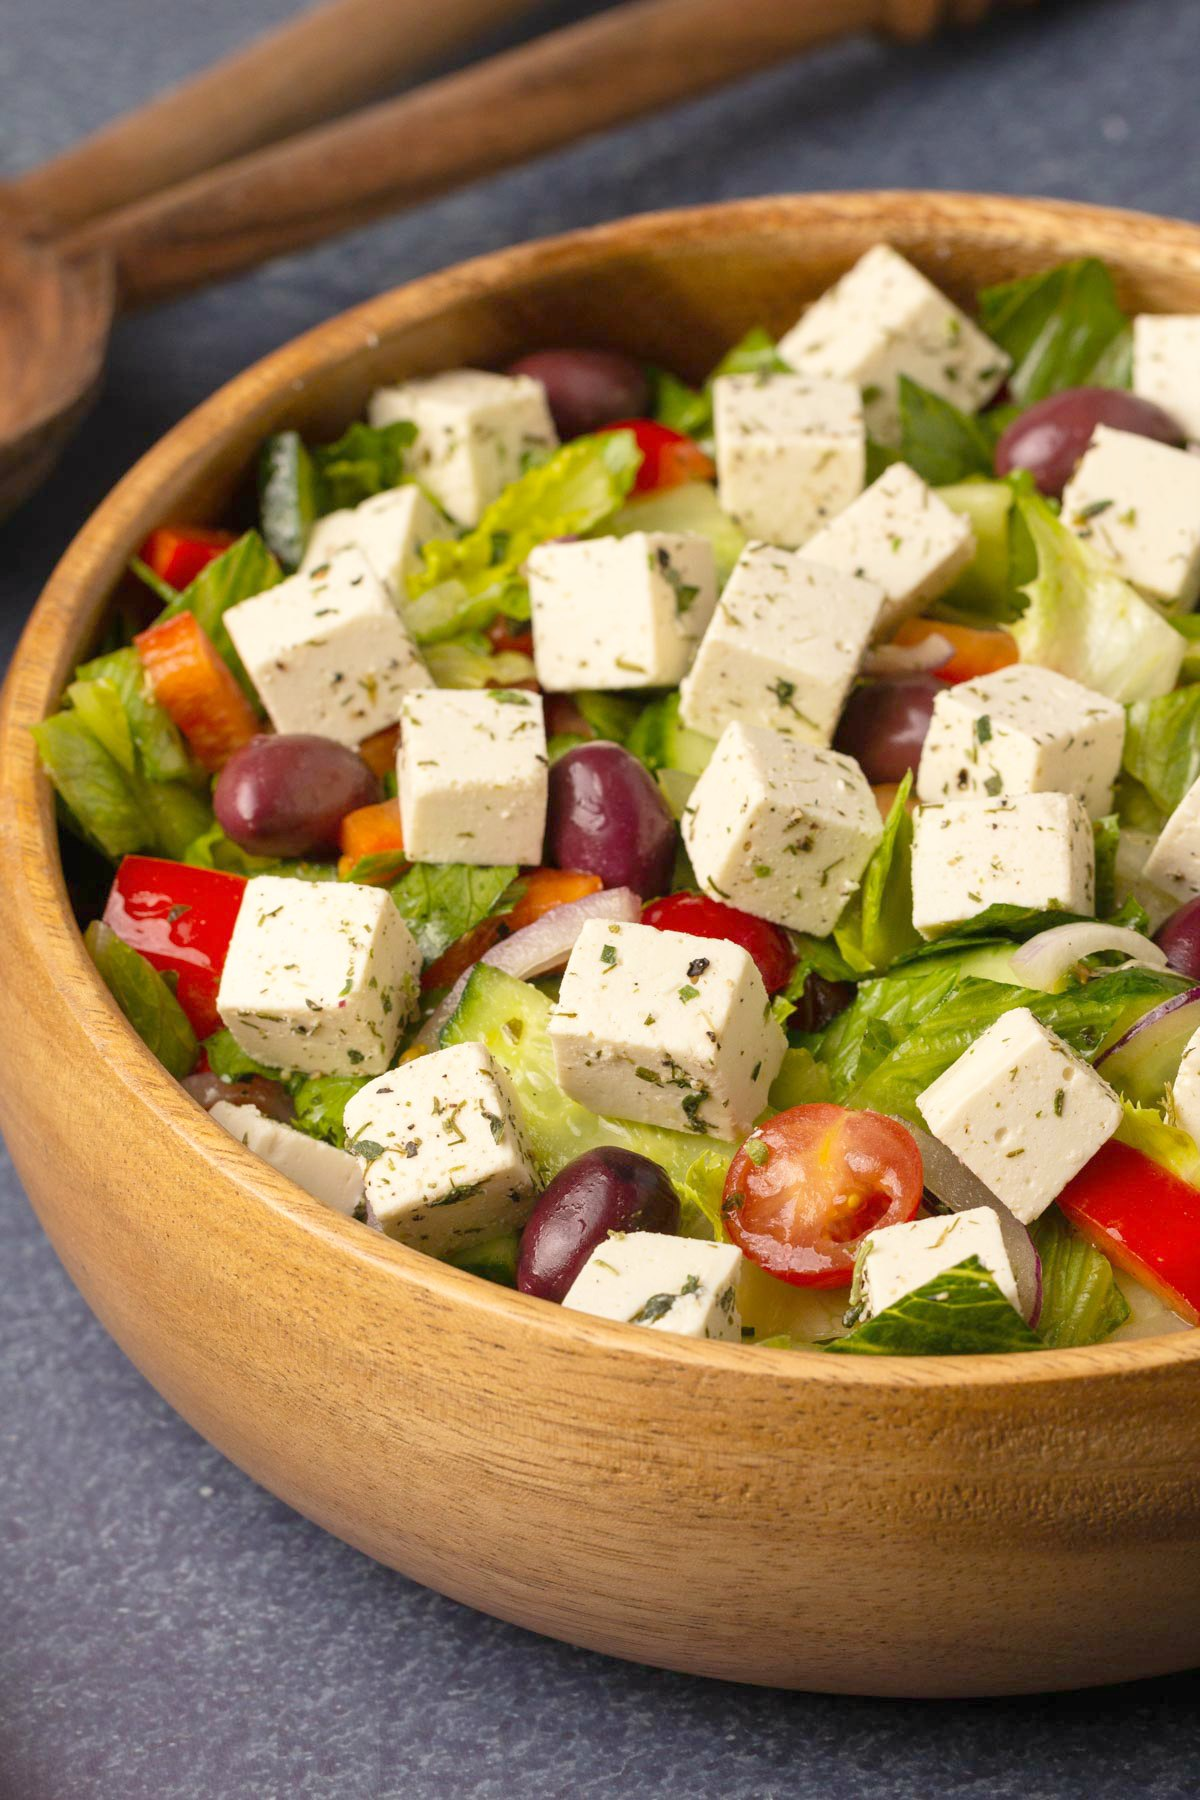 Vegan feta cheese on top of a Greek salad.